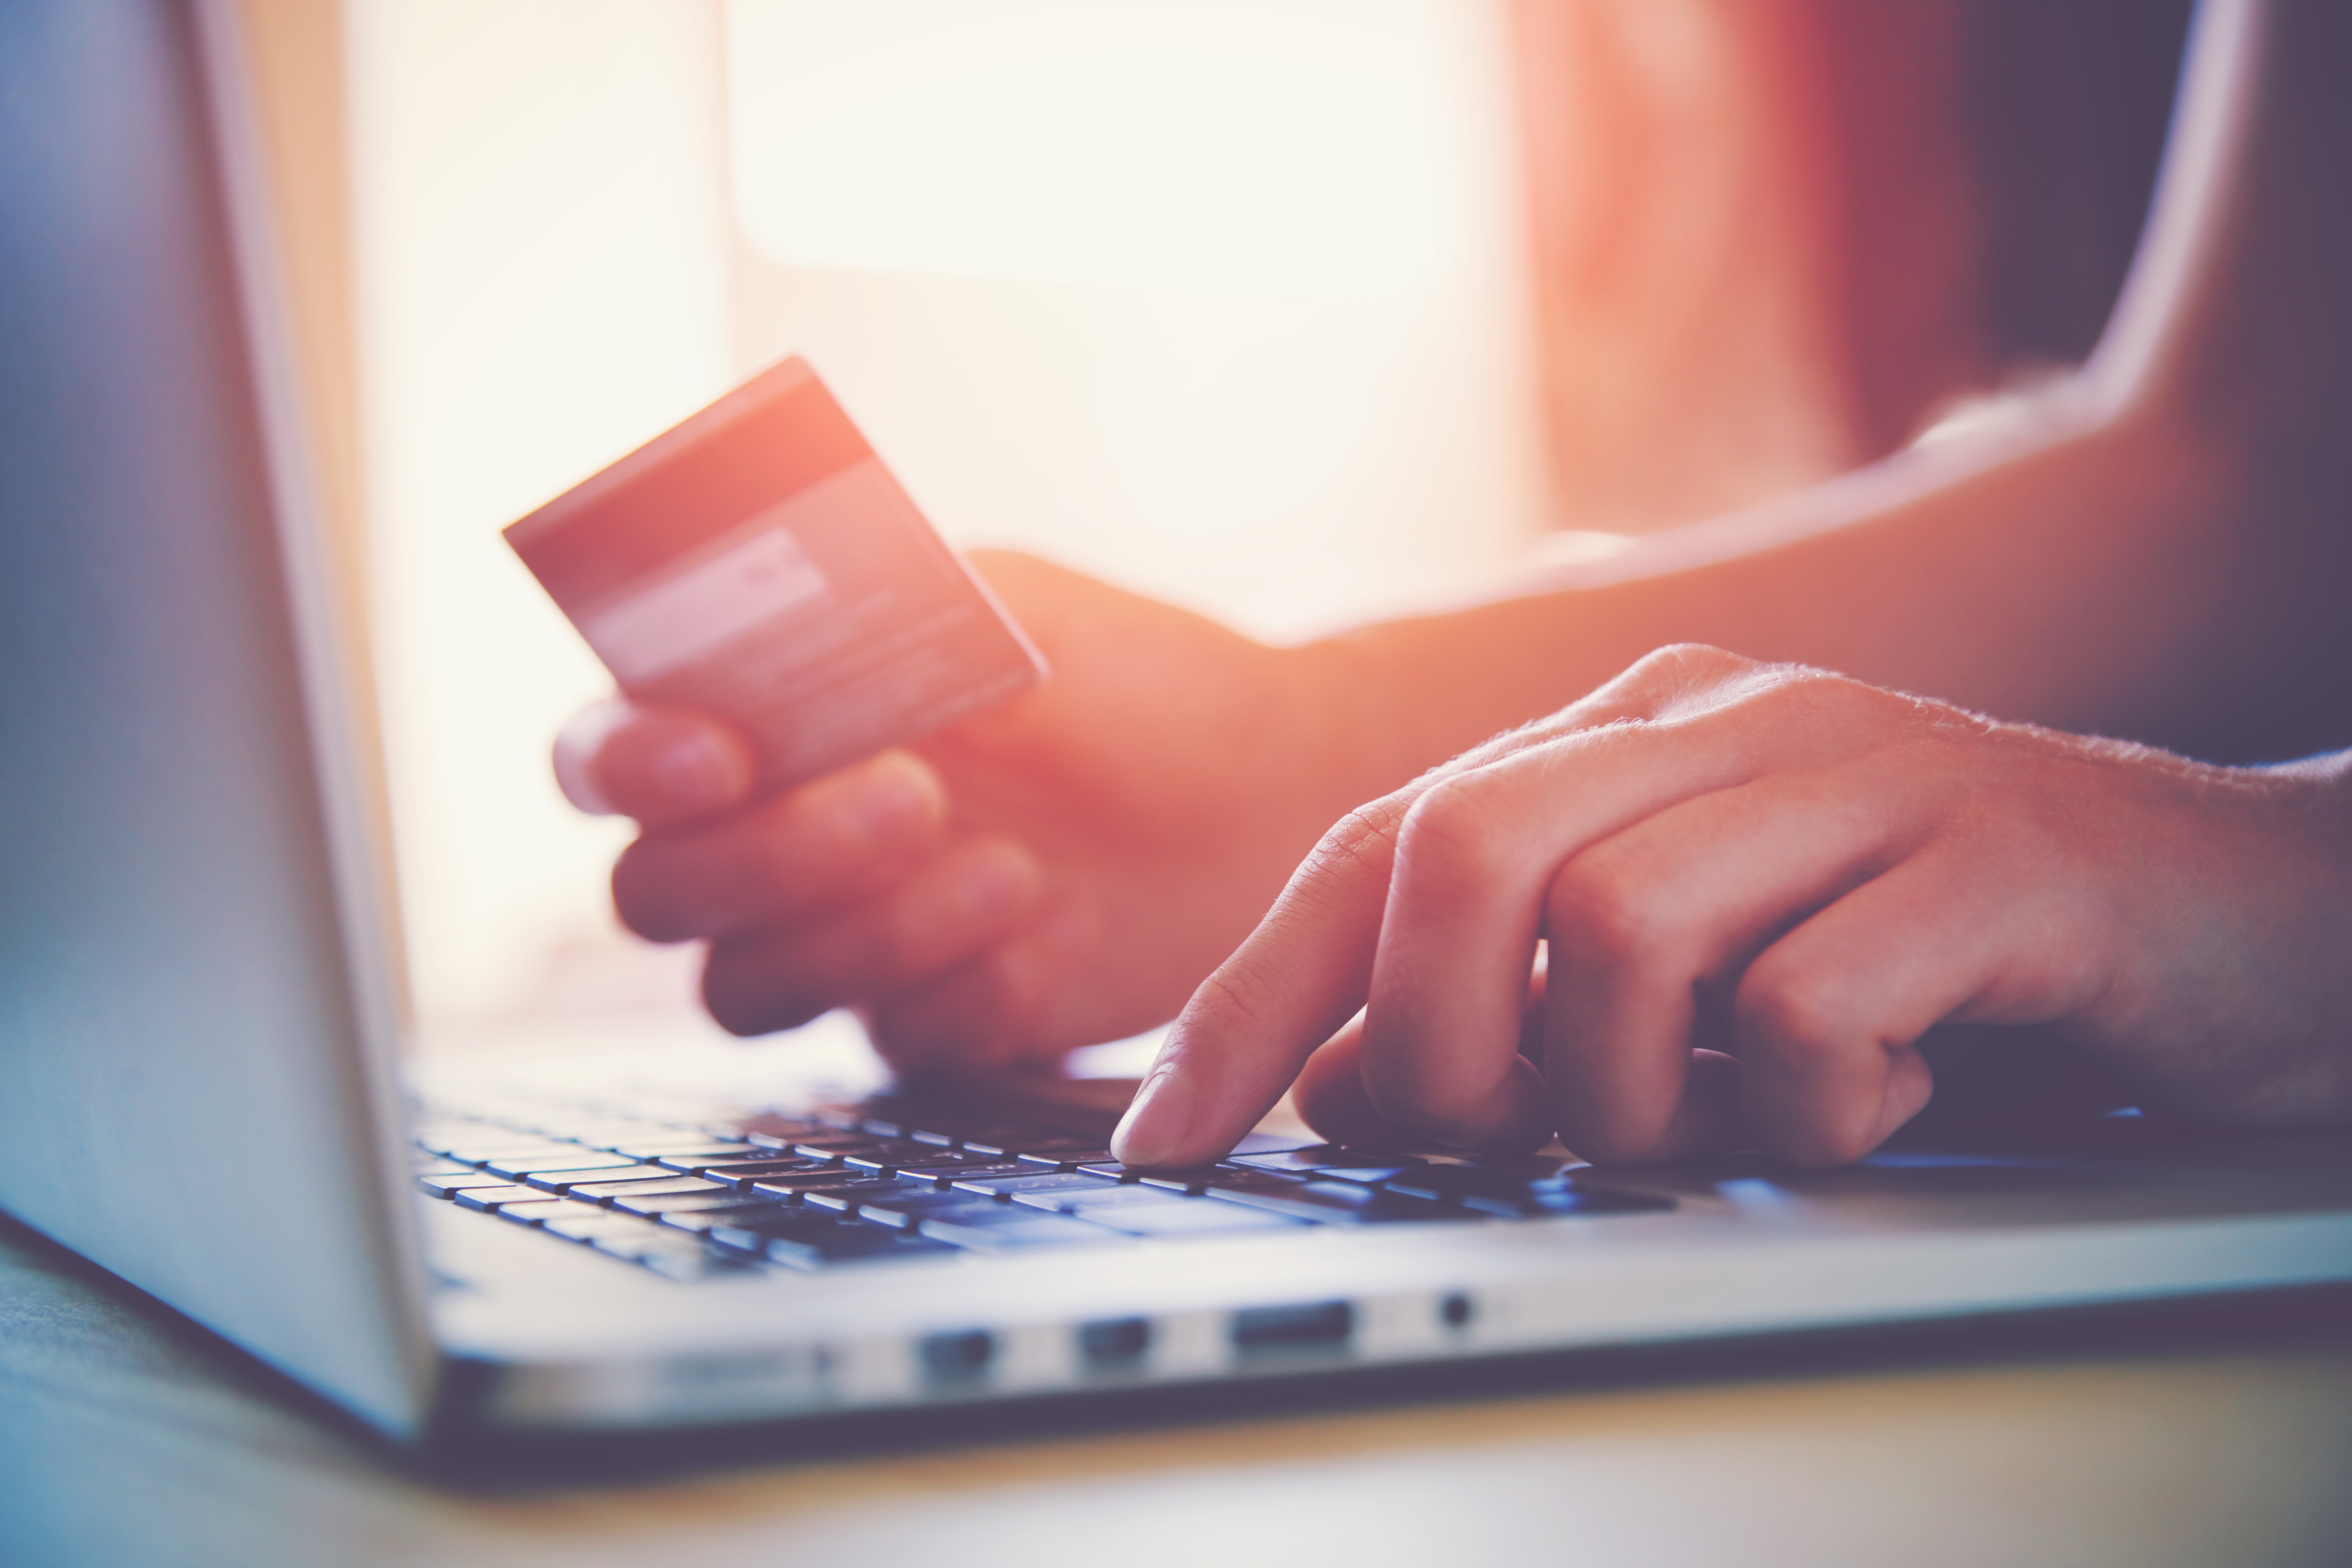 How to Online Shop While Still Being Green